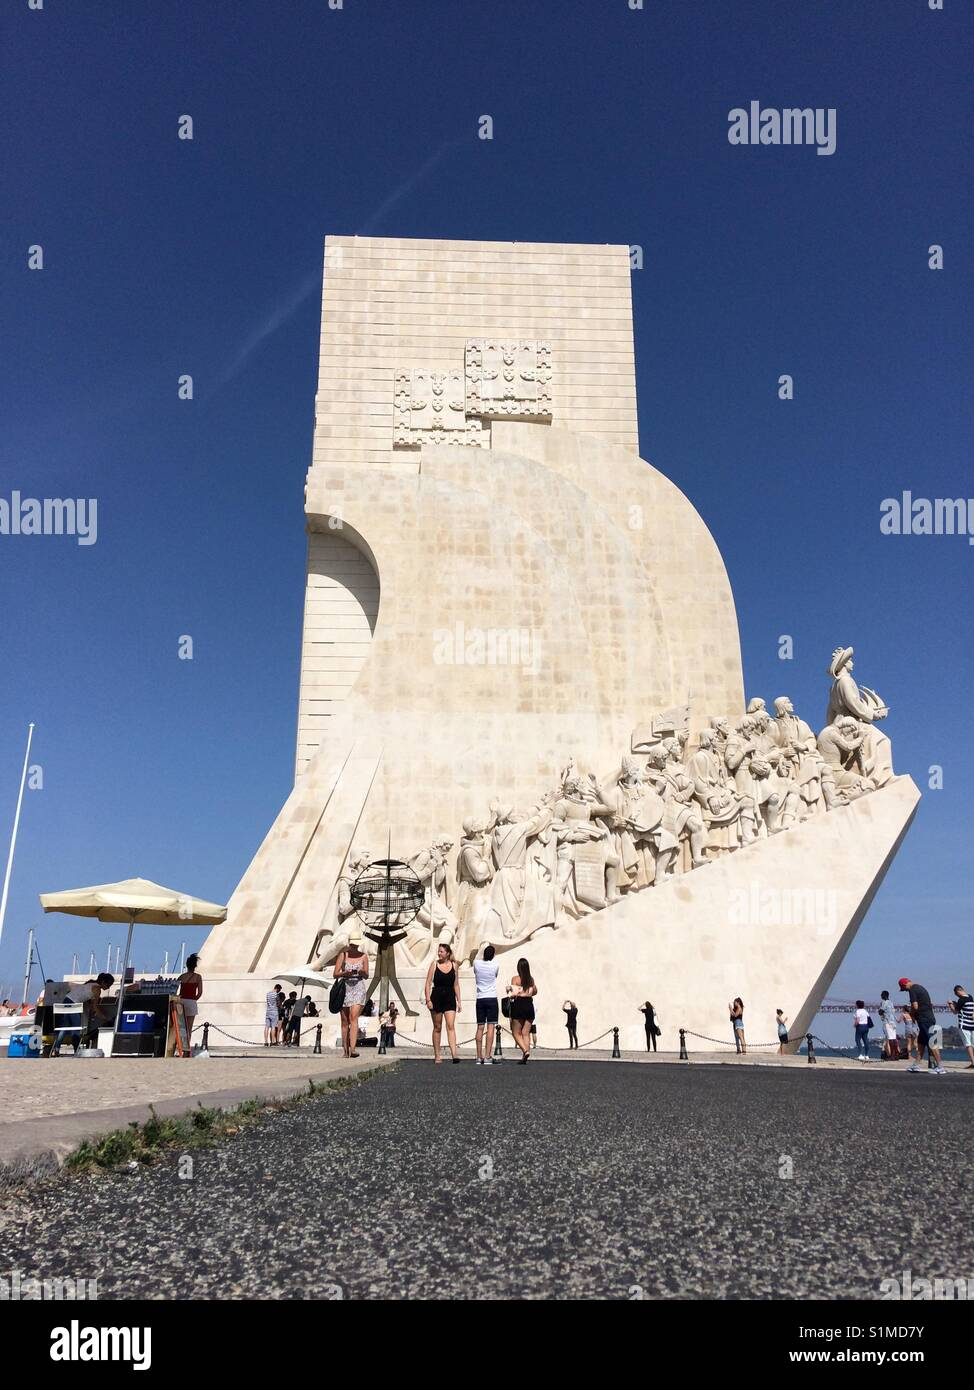 Discoveries monument - Stock Image